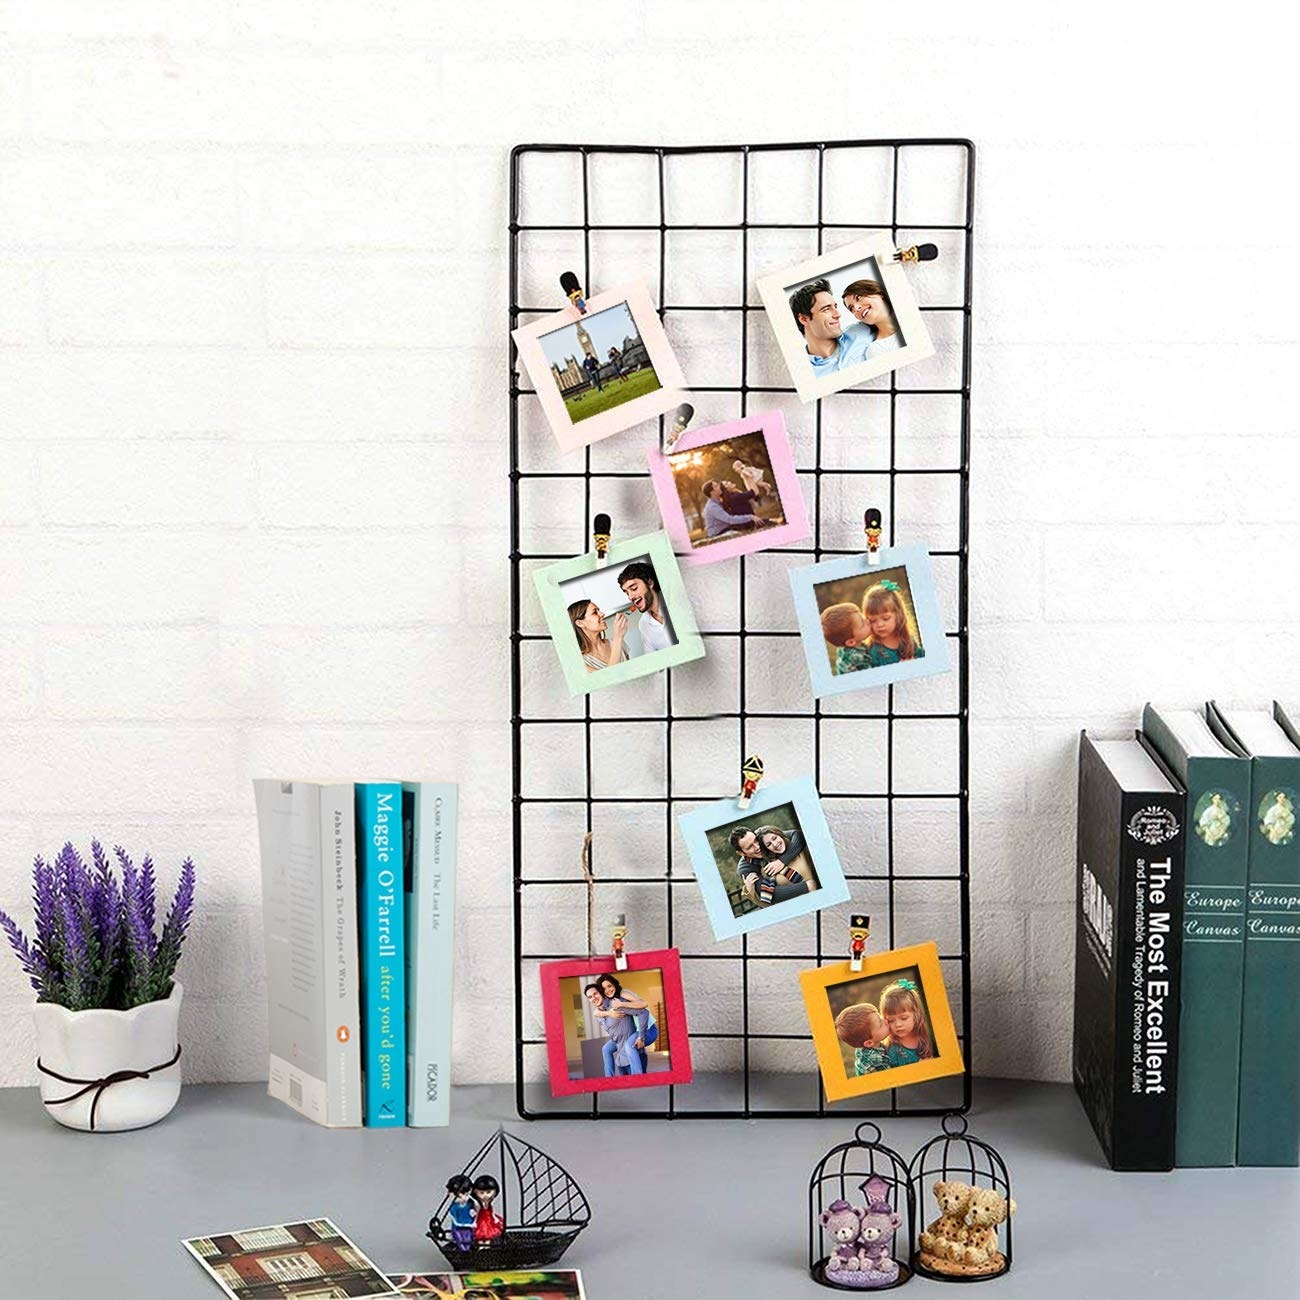 The black metal grid is kept on a work desk. It's being used to display photos.